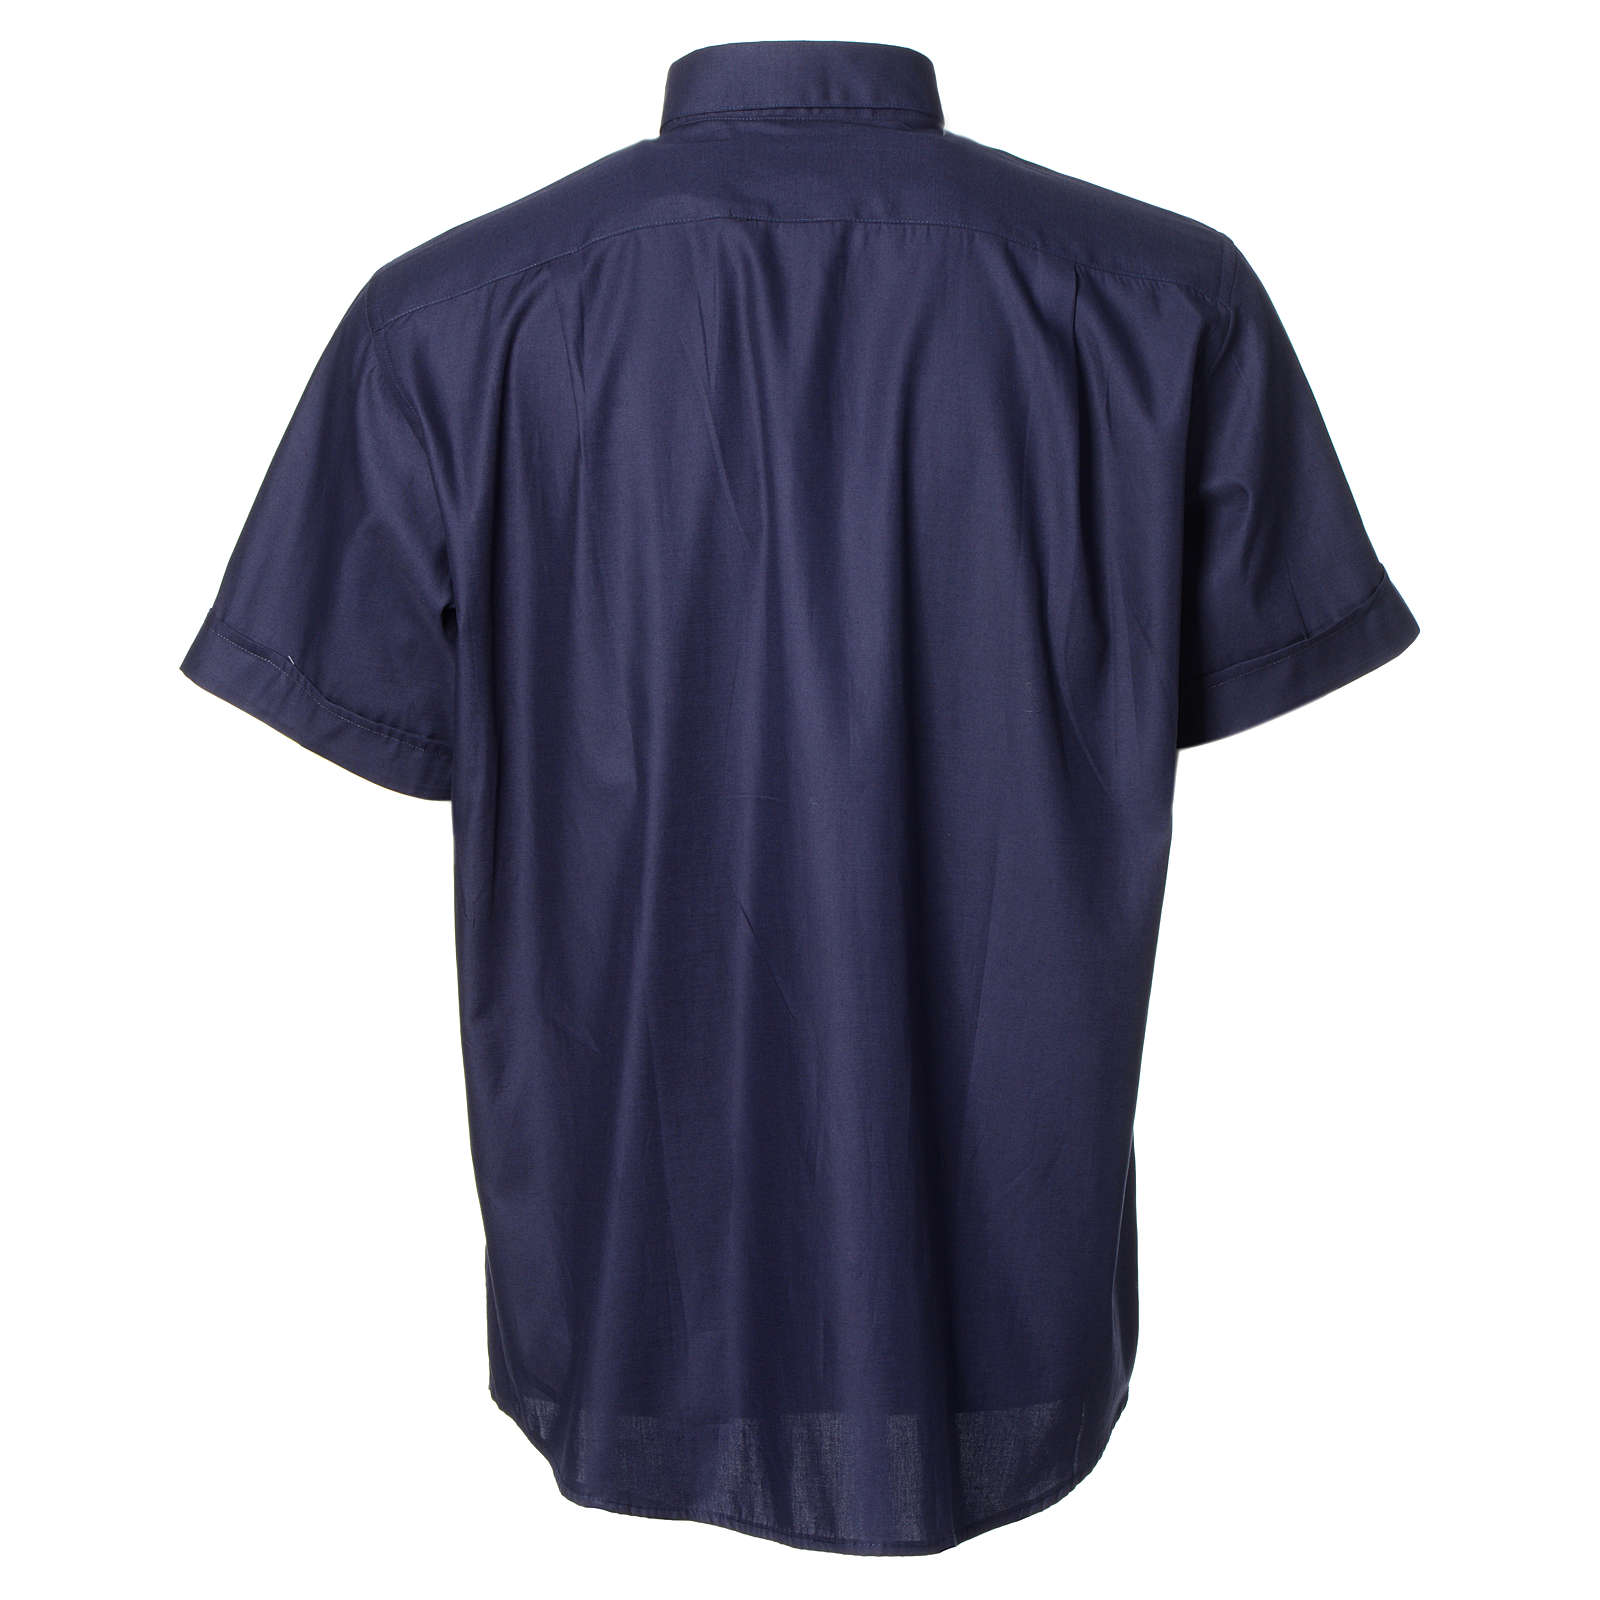 Blue short sleeves clergy shirt, cotton and polyester 4